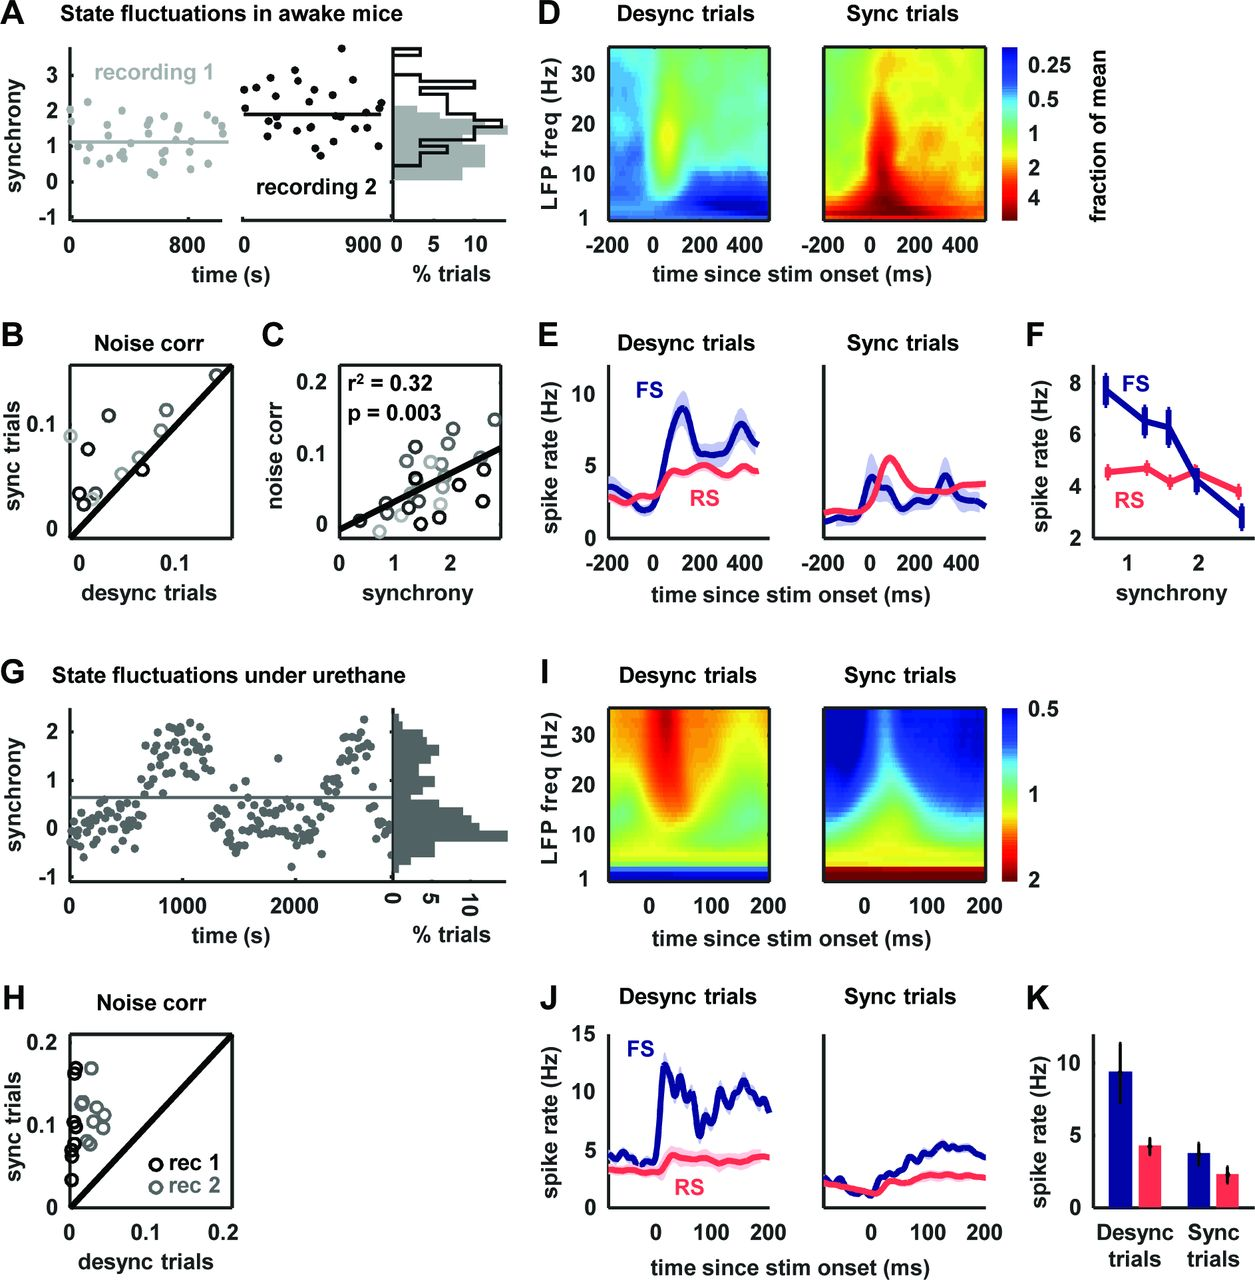 Inhibitory control of shared variability in cortical networks | bioRxiv